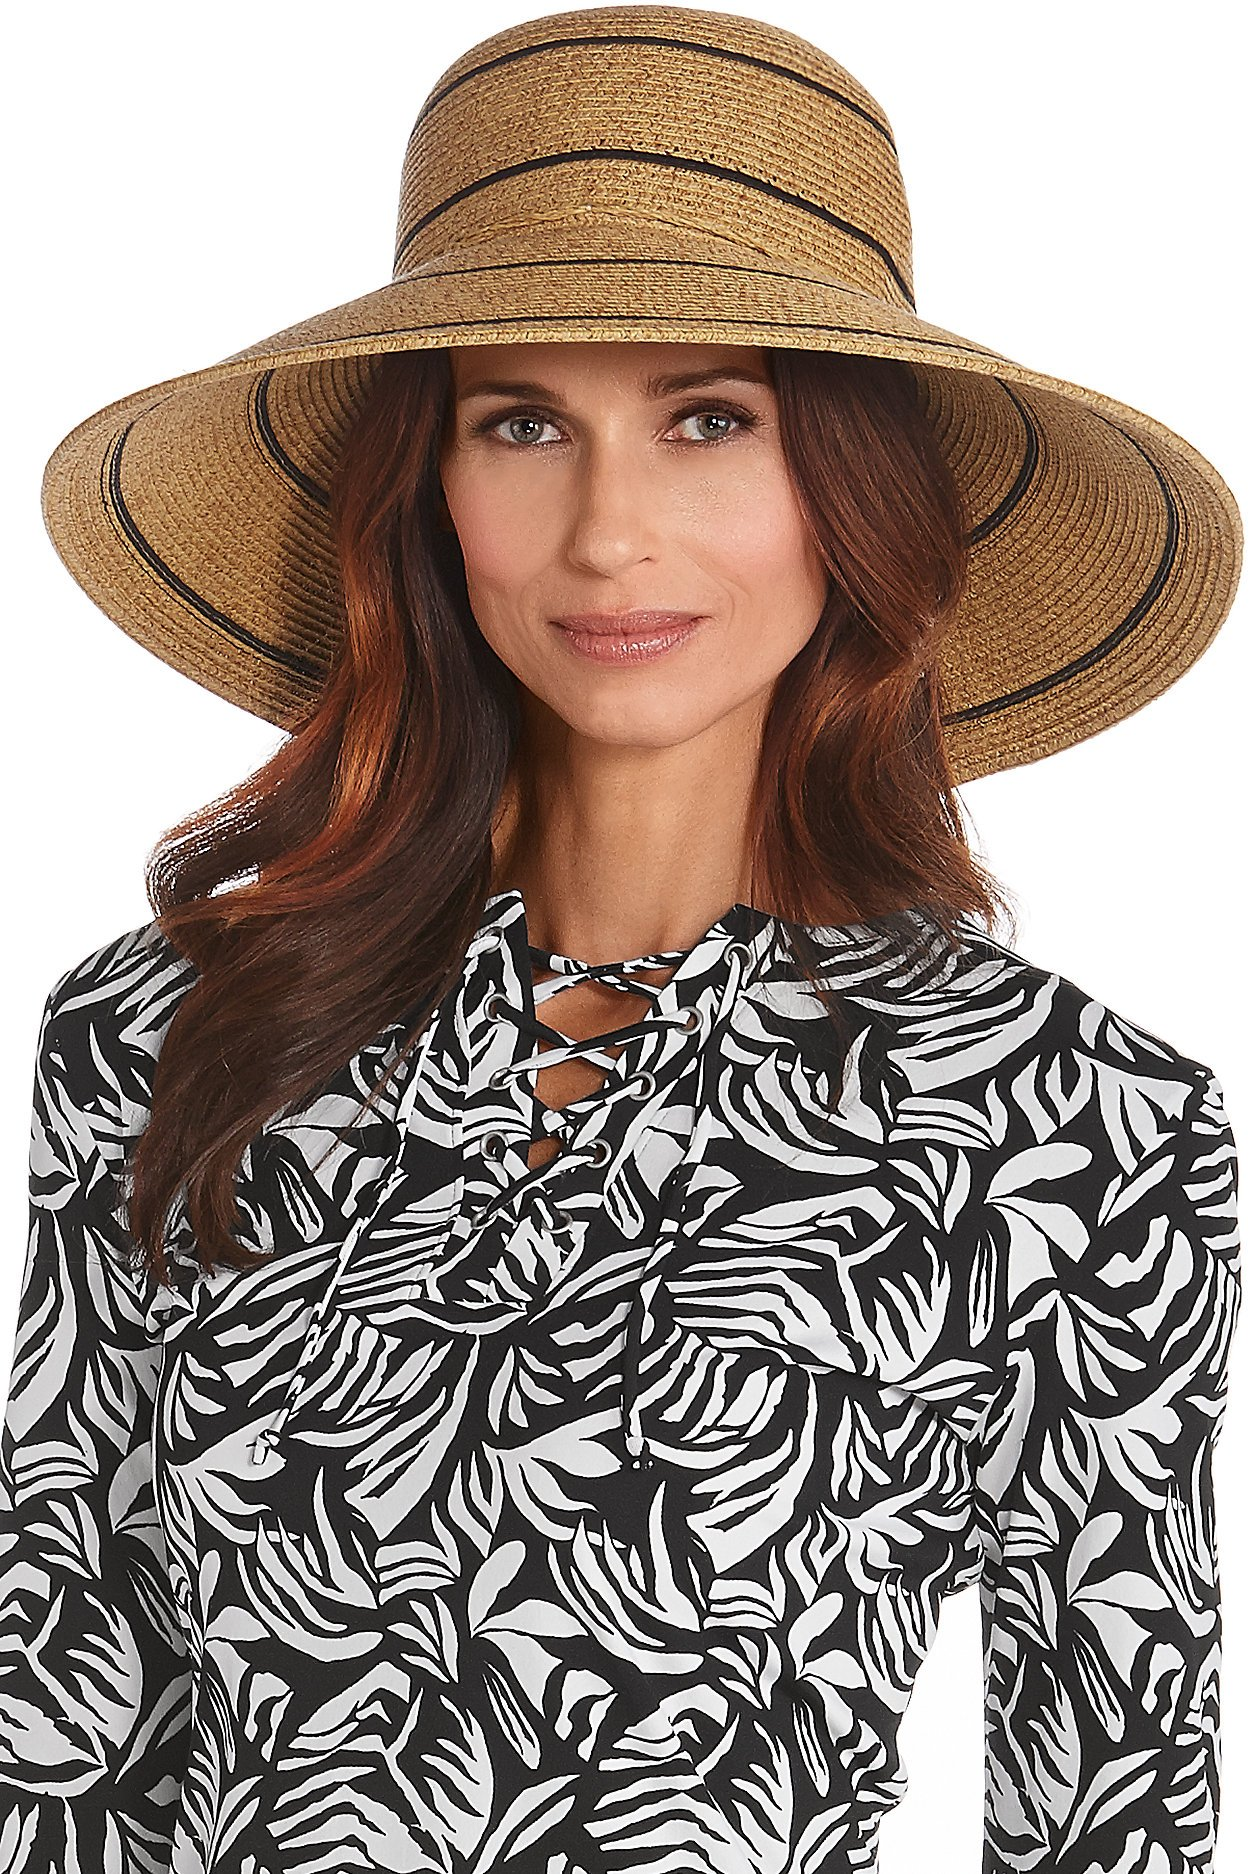 Coolibar UPF 50+ Women's Wide Brim Beach Hat - Sun Protective (One Size- Natural Wide Stripe)